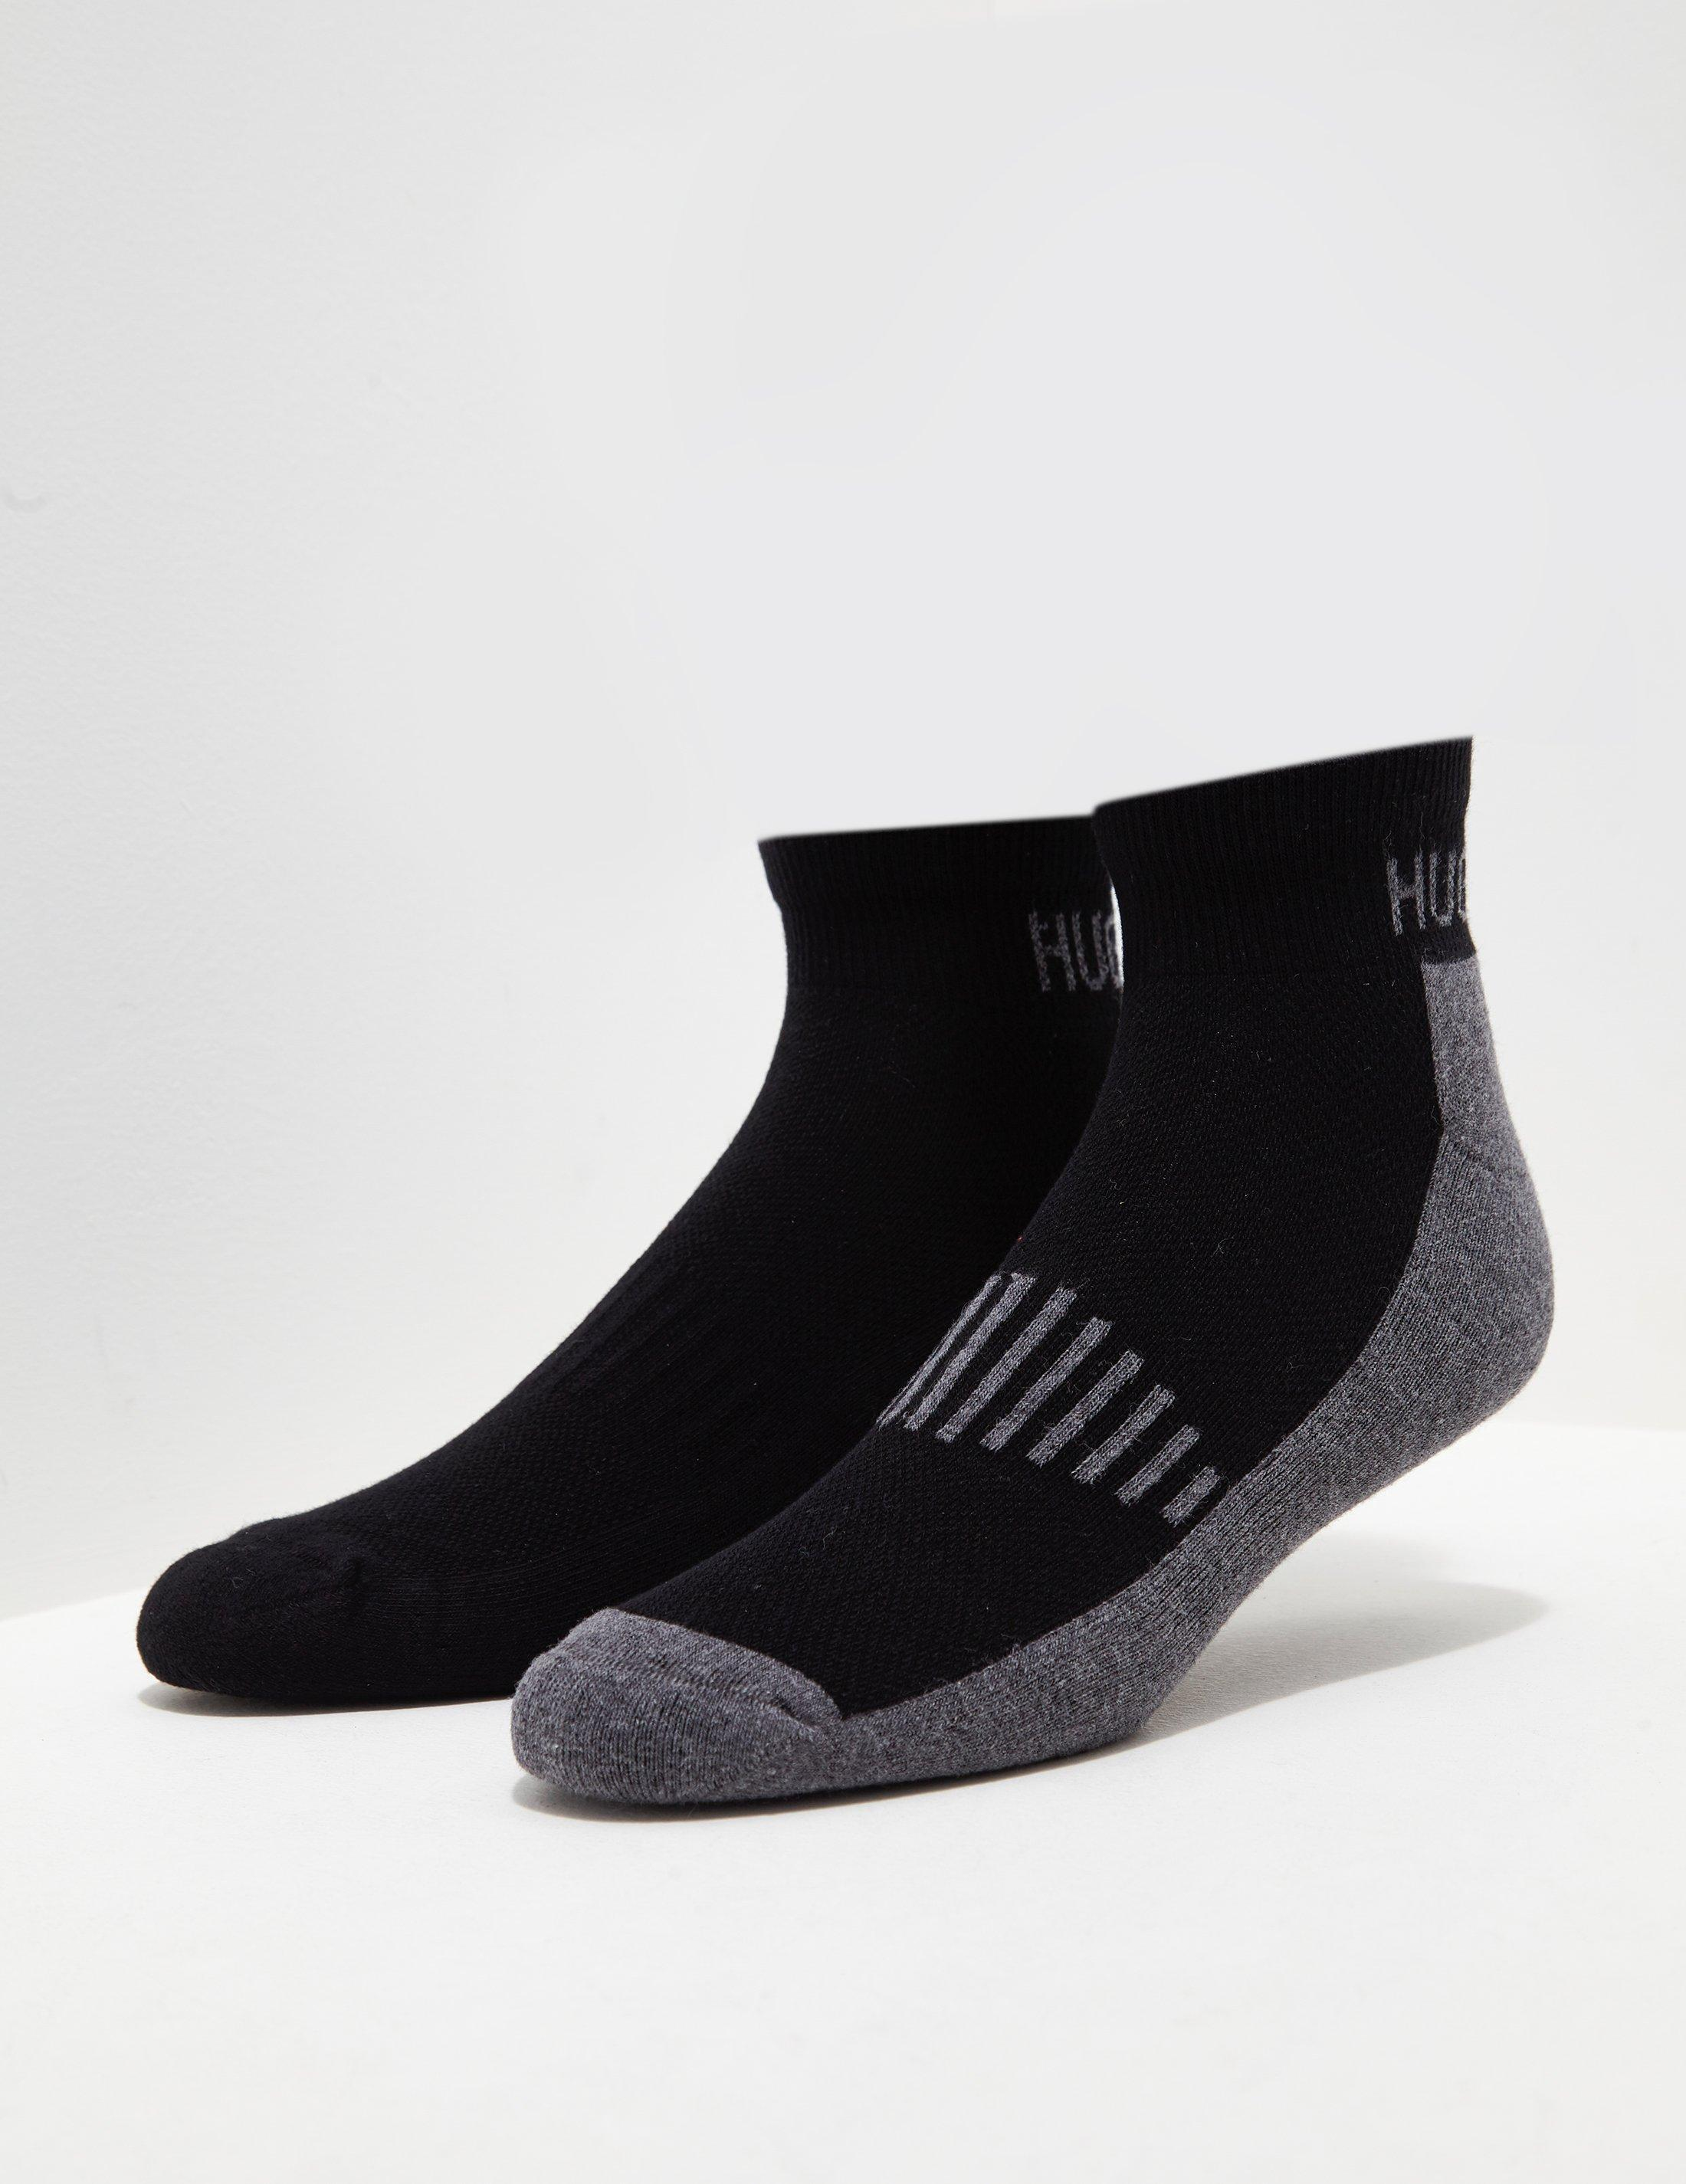 BOSS. Mens 2-pack Sport Socks Black/grey